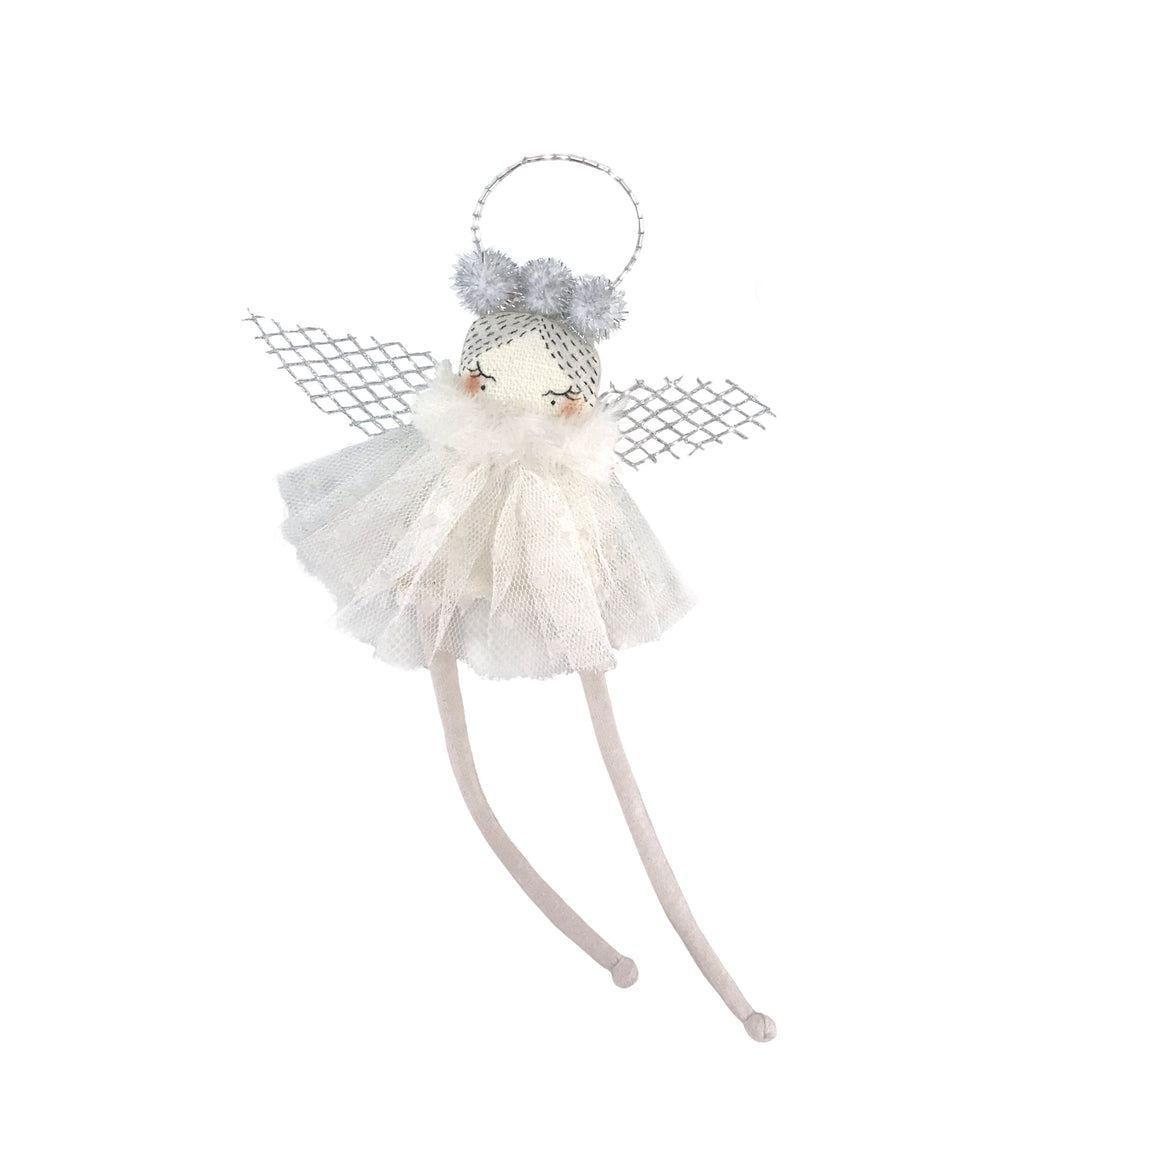 Wish Pixie Doll - 'Float' - Christmas Collection